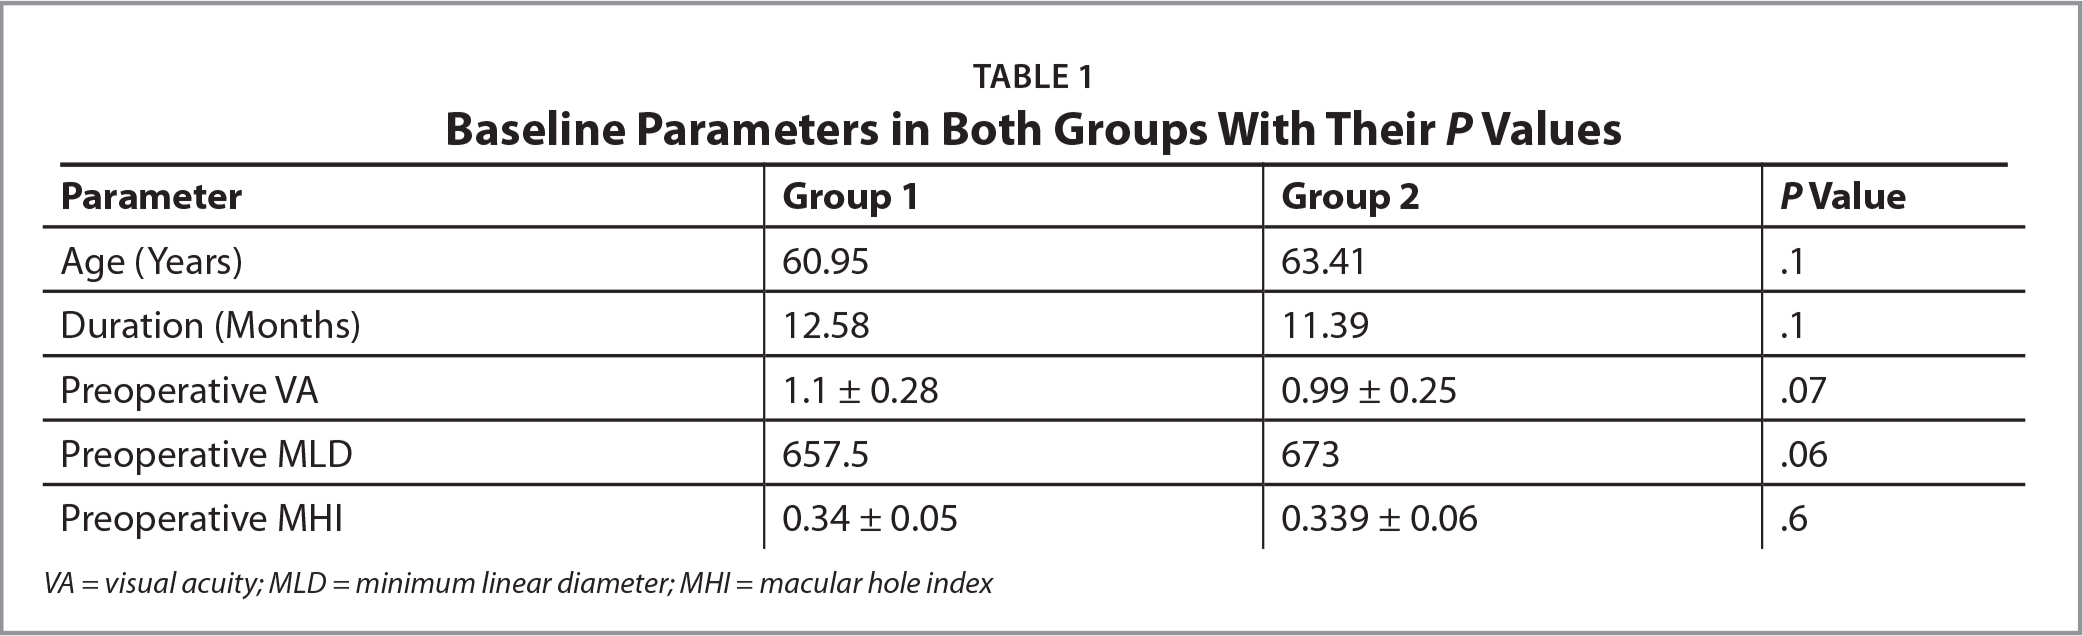 Baseline Parameters in Both Groups With Their P Values